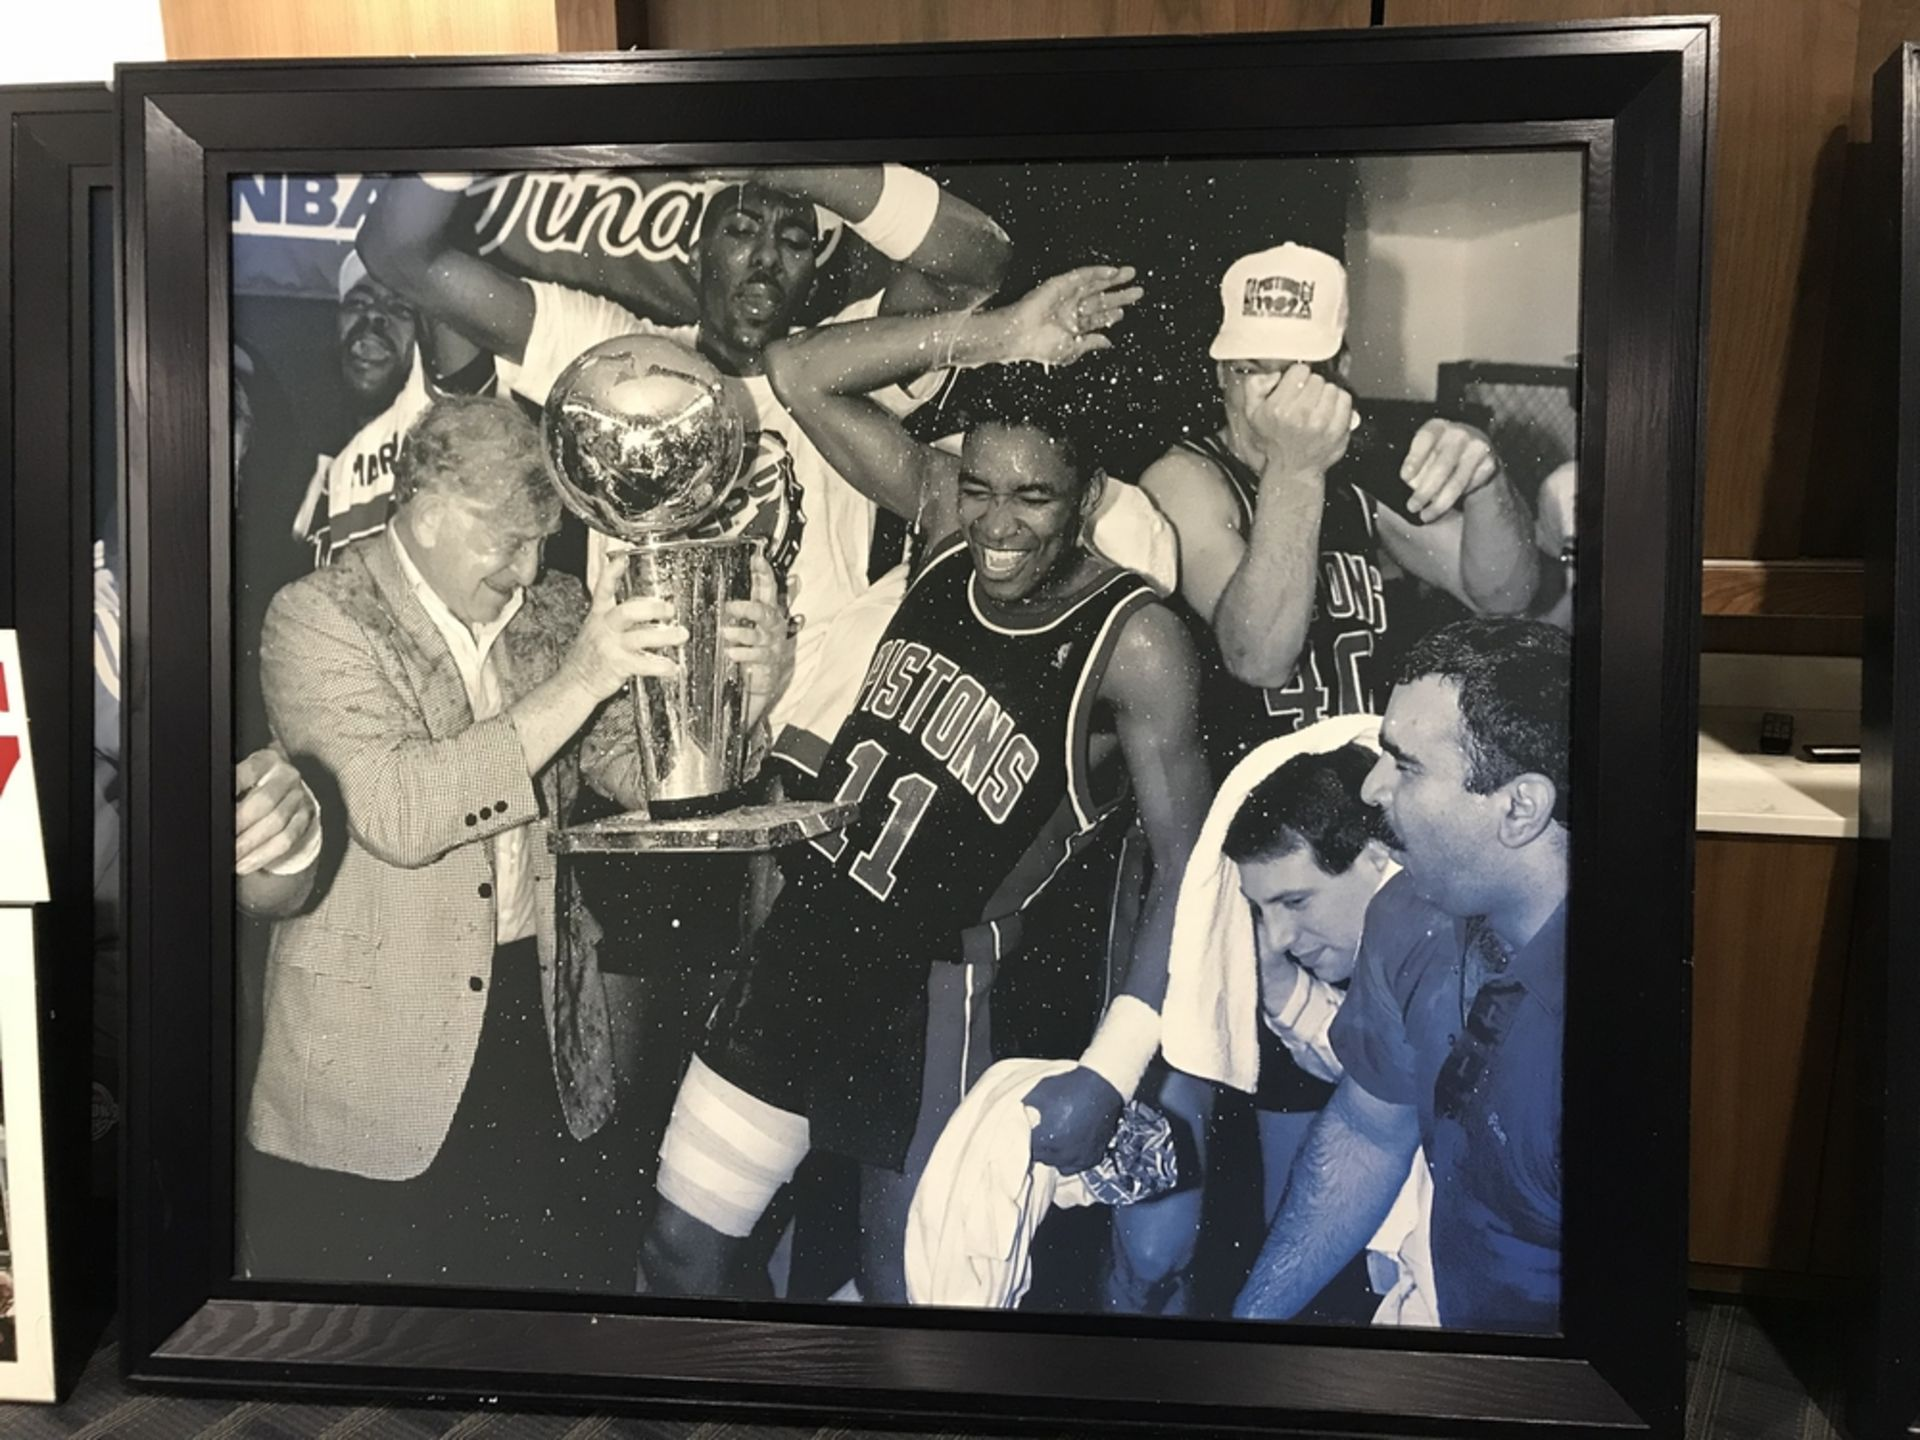 Lot 18C - 1989 Champ Celebration Framed on Canvas , Dim. 90 in x 78 in , Location: Chairmans Club ***Note from